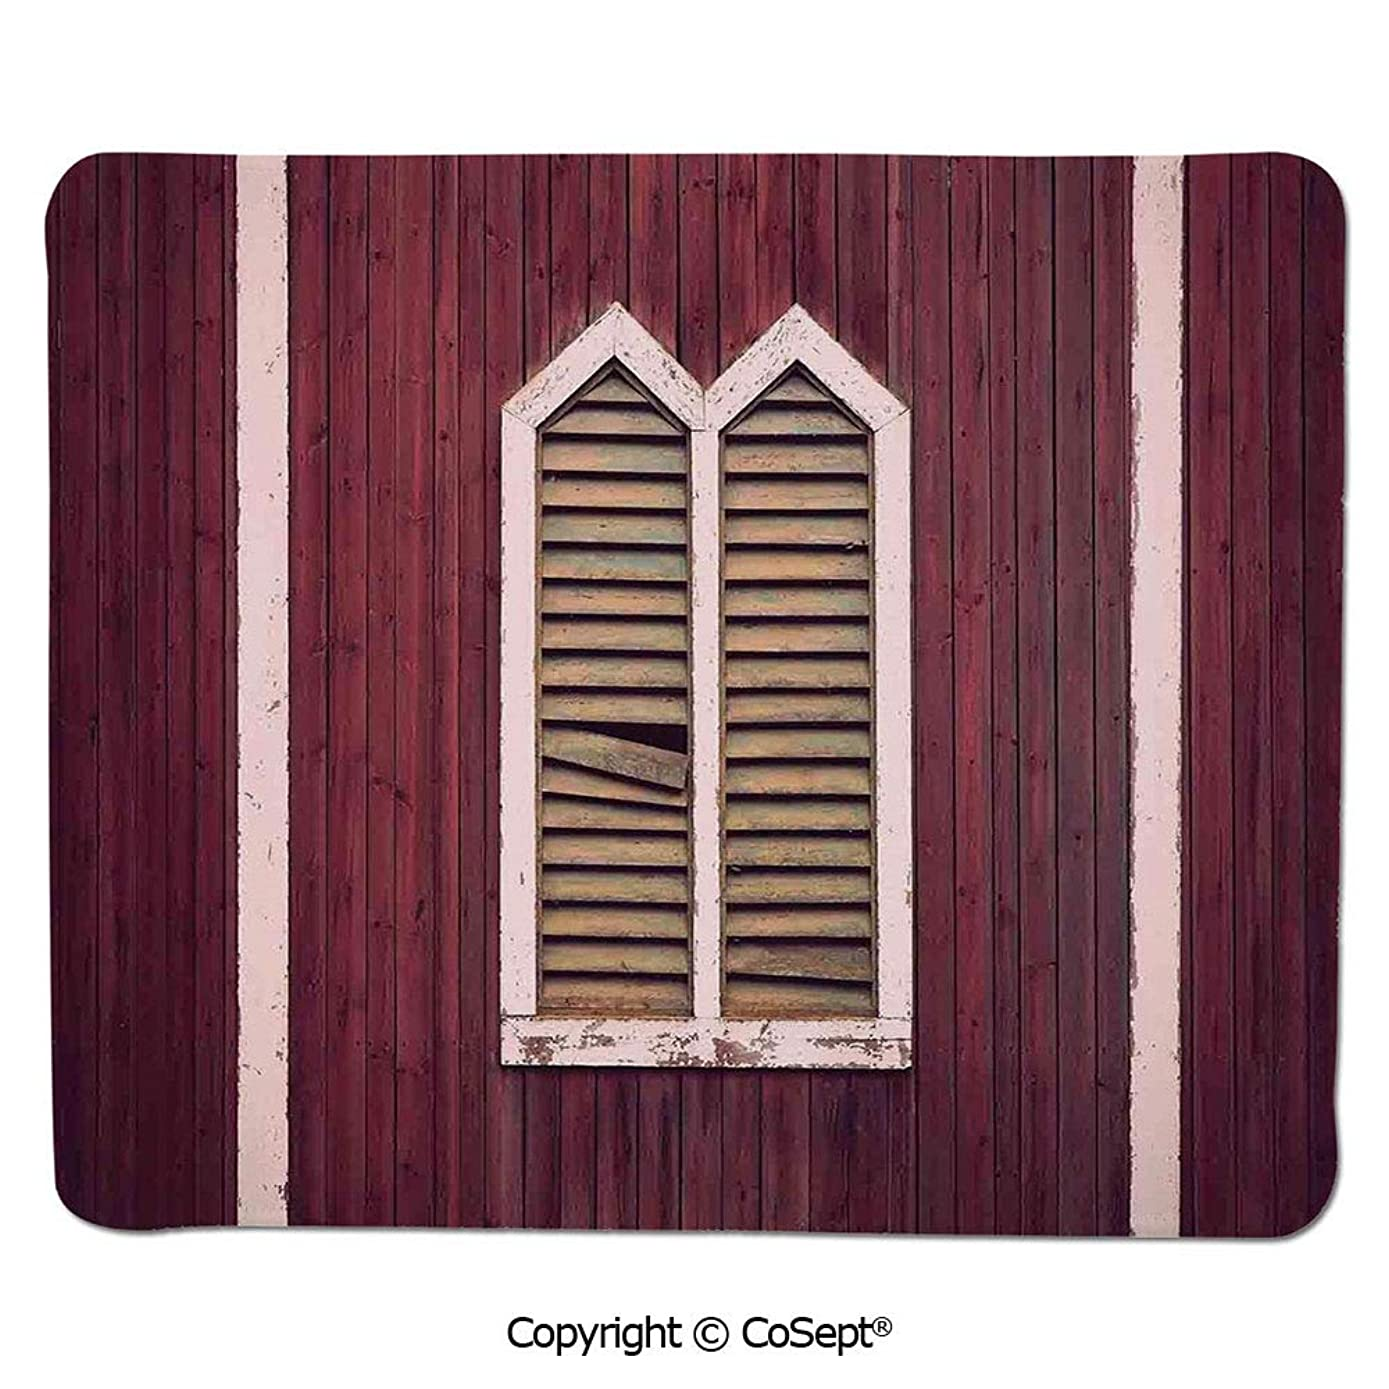 Non-Slip Rubber Base Mousepad,Window Frame with Shutters on a Wooden Wall Vintage Style Artwork Print,Non-Slip Water-Resistant Rubber Base Cloth Computer Mouse Mat (11.81